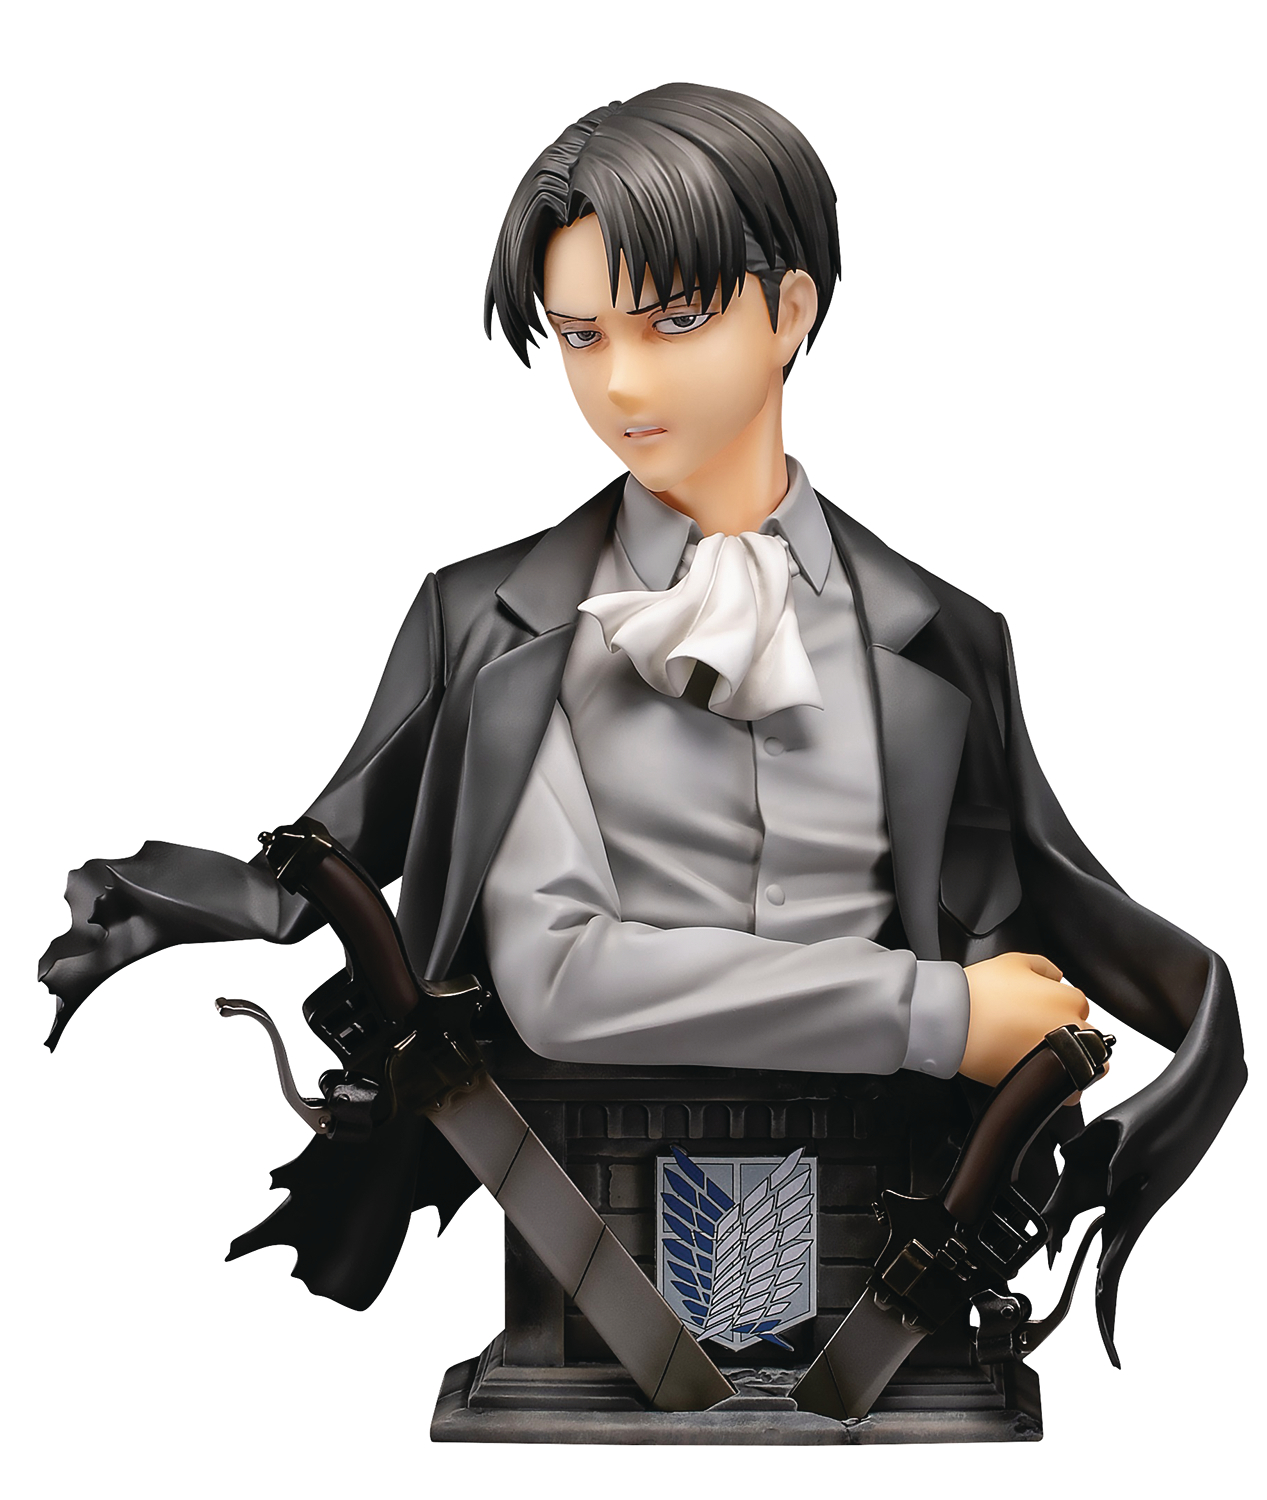 ATTACK ON TITAN LEVI 1/3 PMMA & PU STATUE COLOR VER